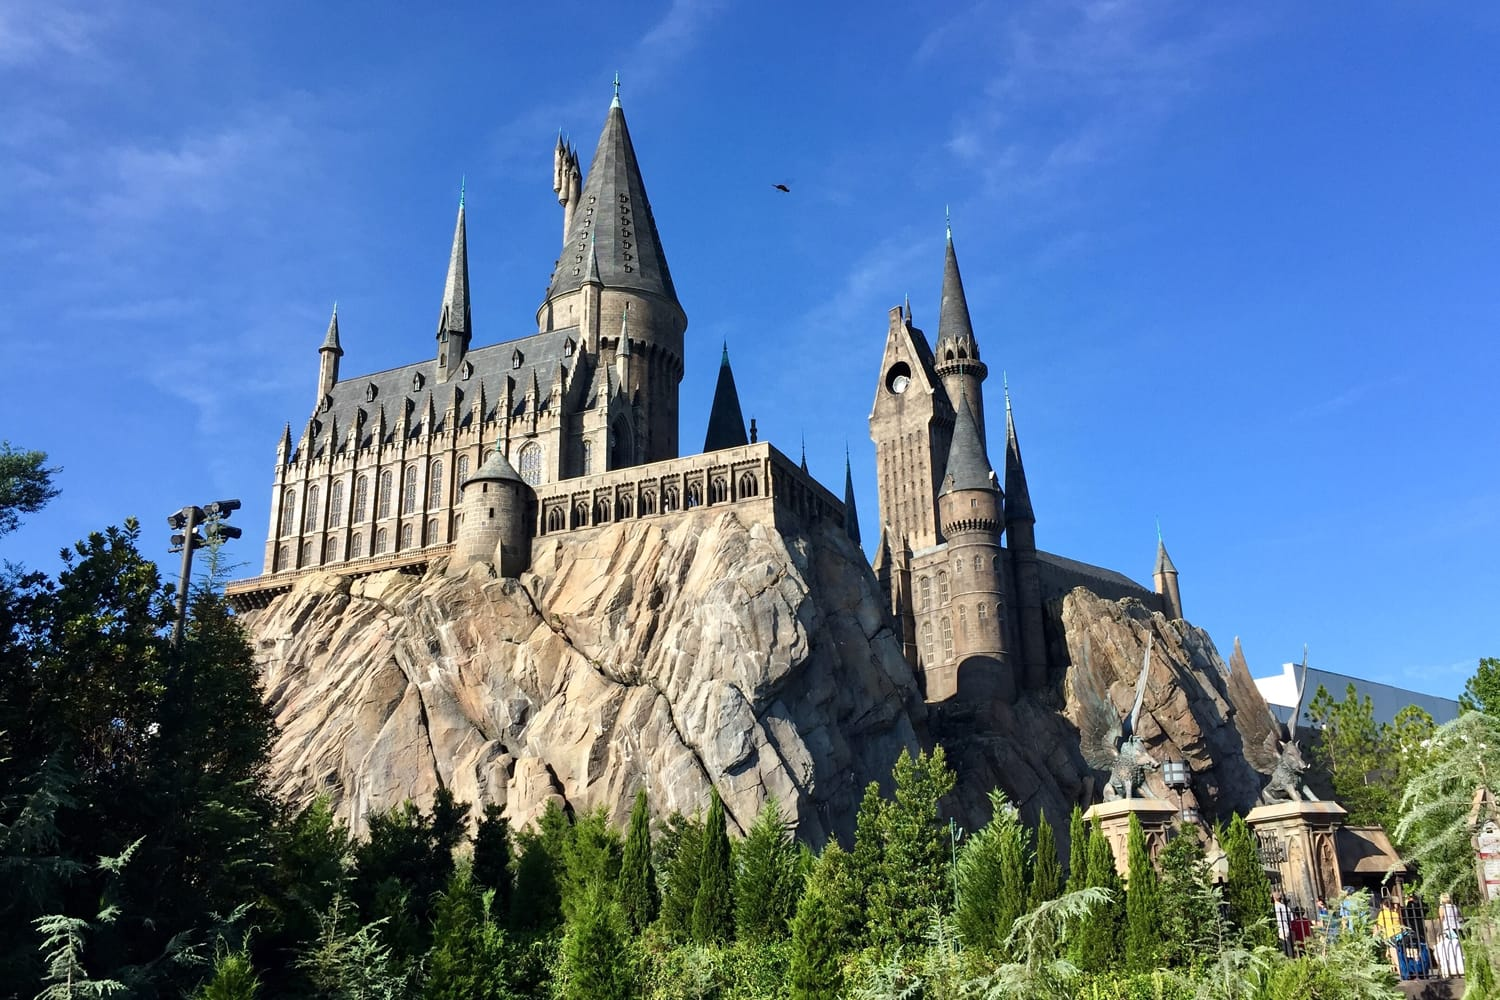 Hogwart in the wizarding world of Harry Potter in Orlando, Florida